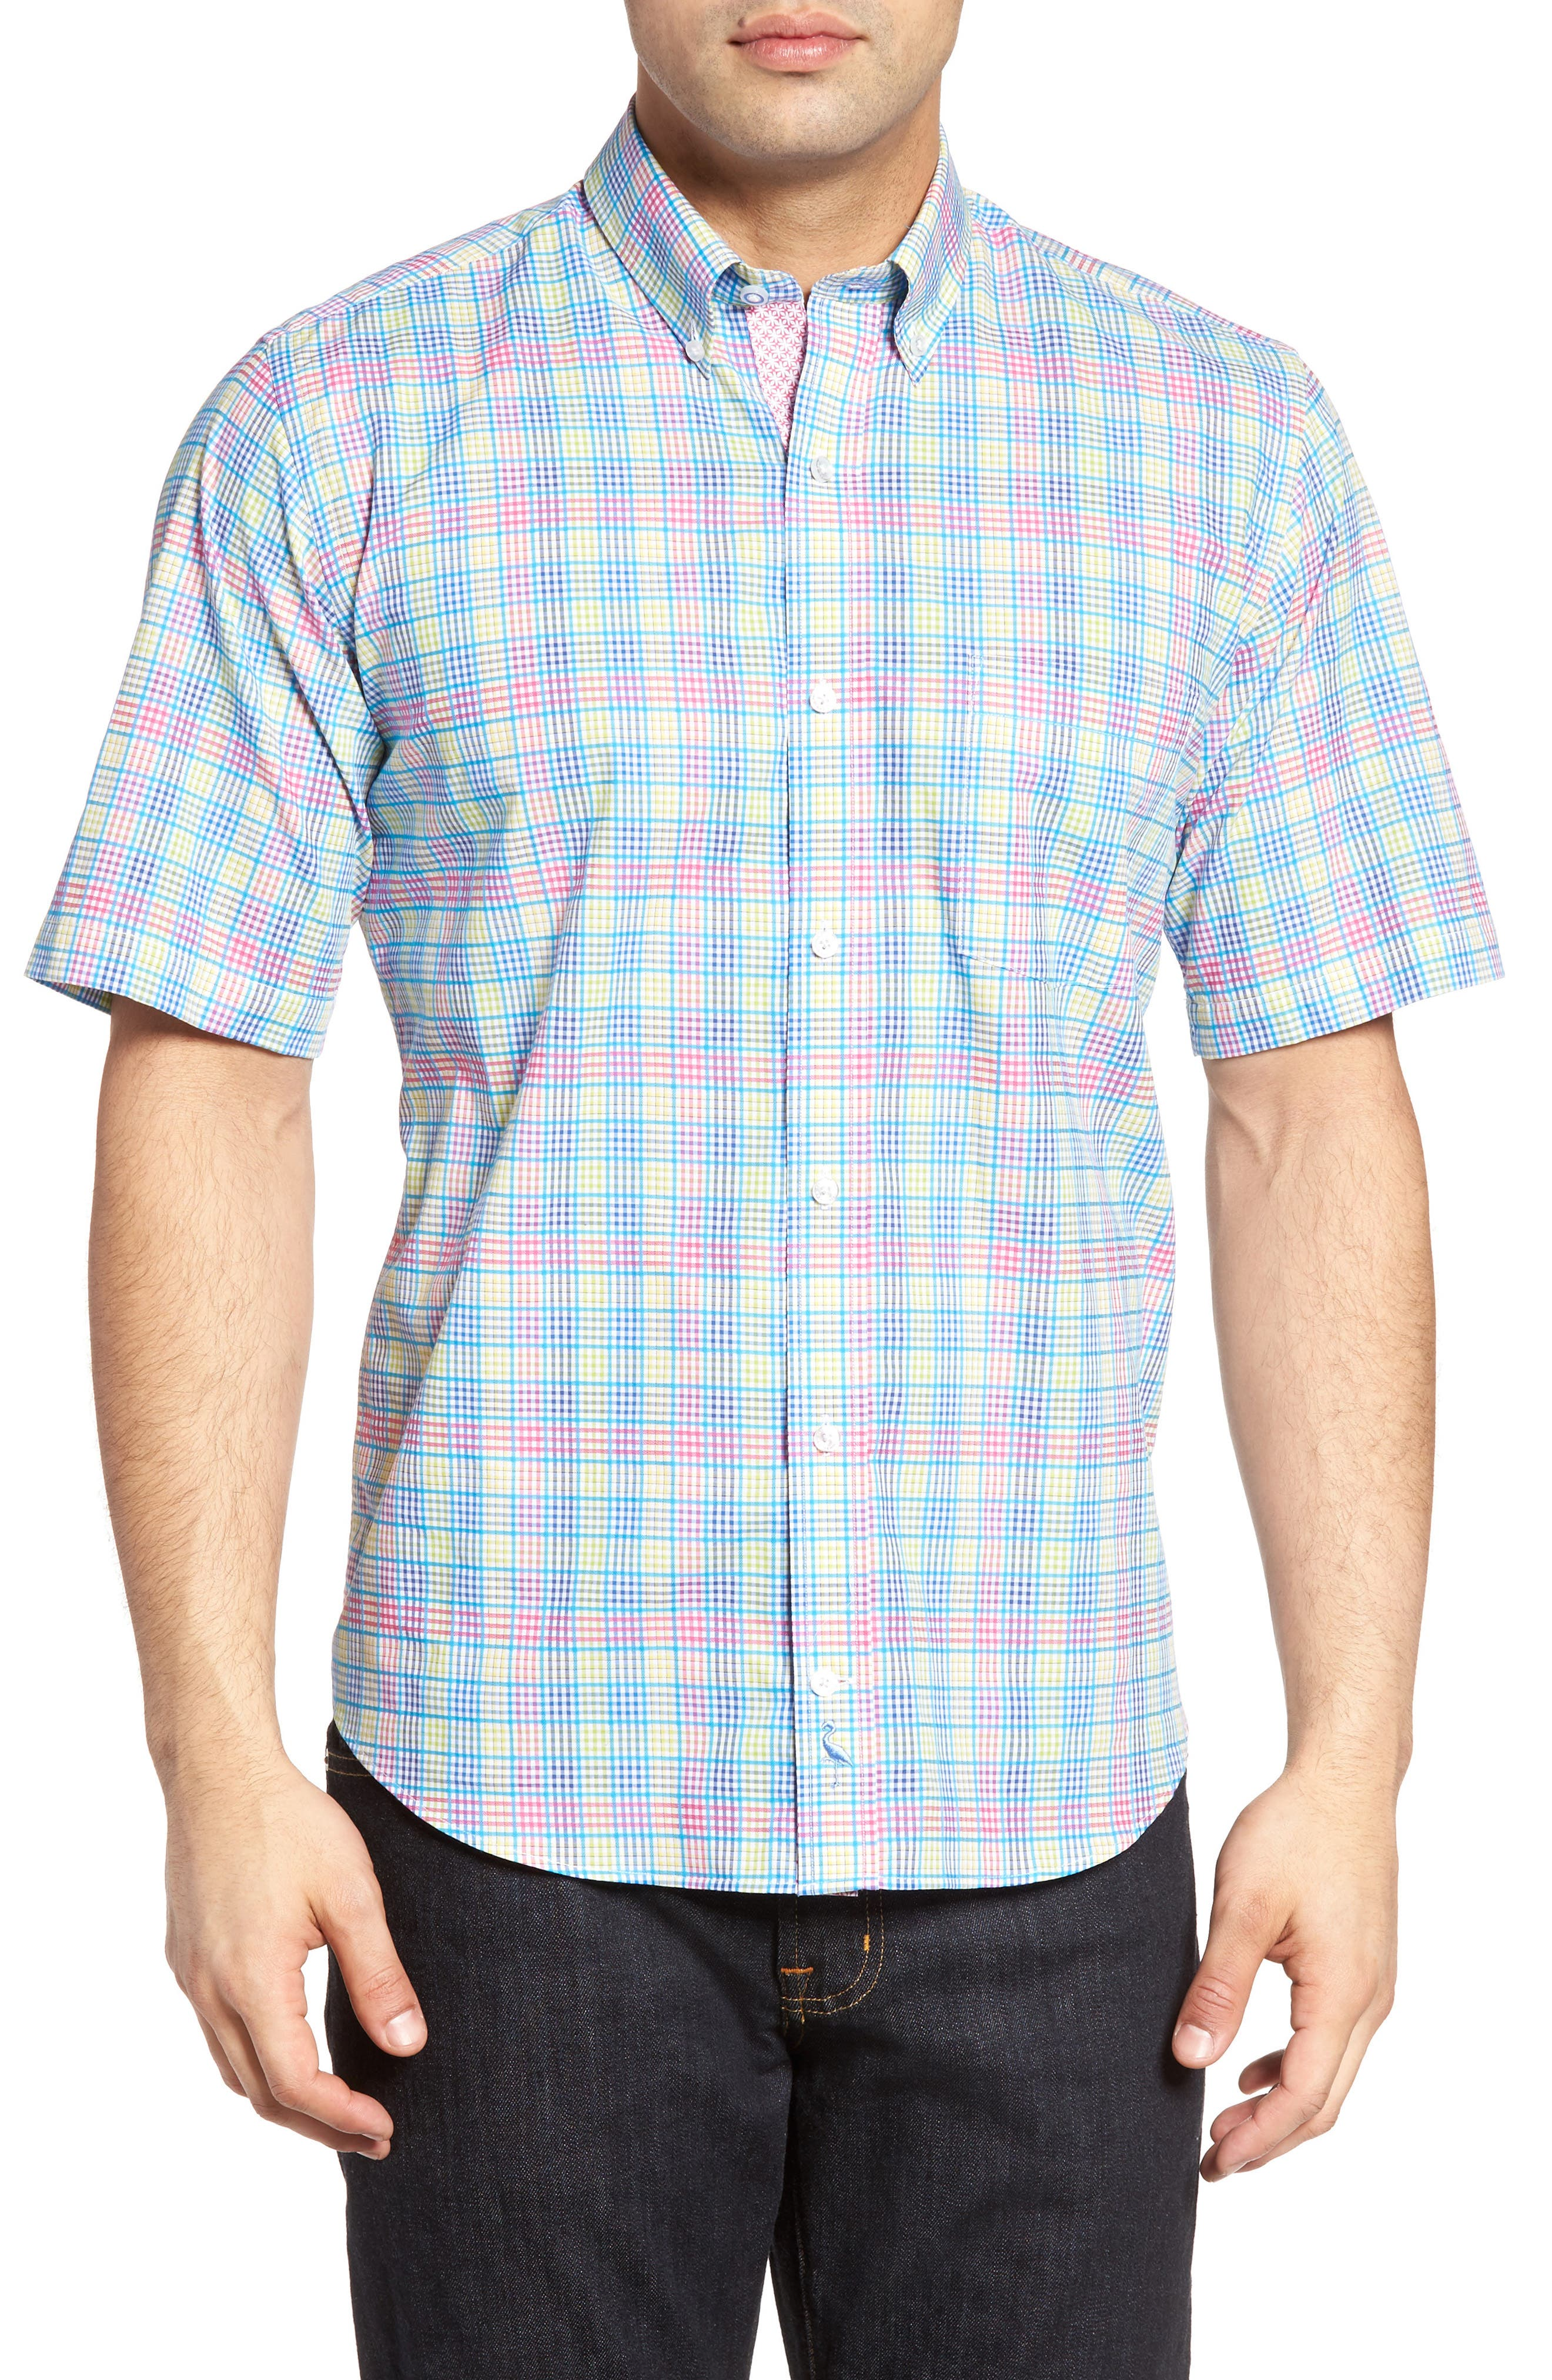 Alternate Image 1 Selected - TailorByrd Lemon Plaid Sport Shirt